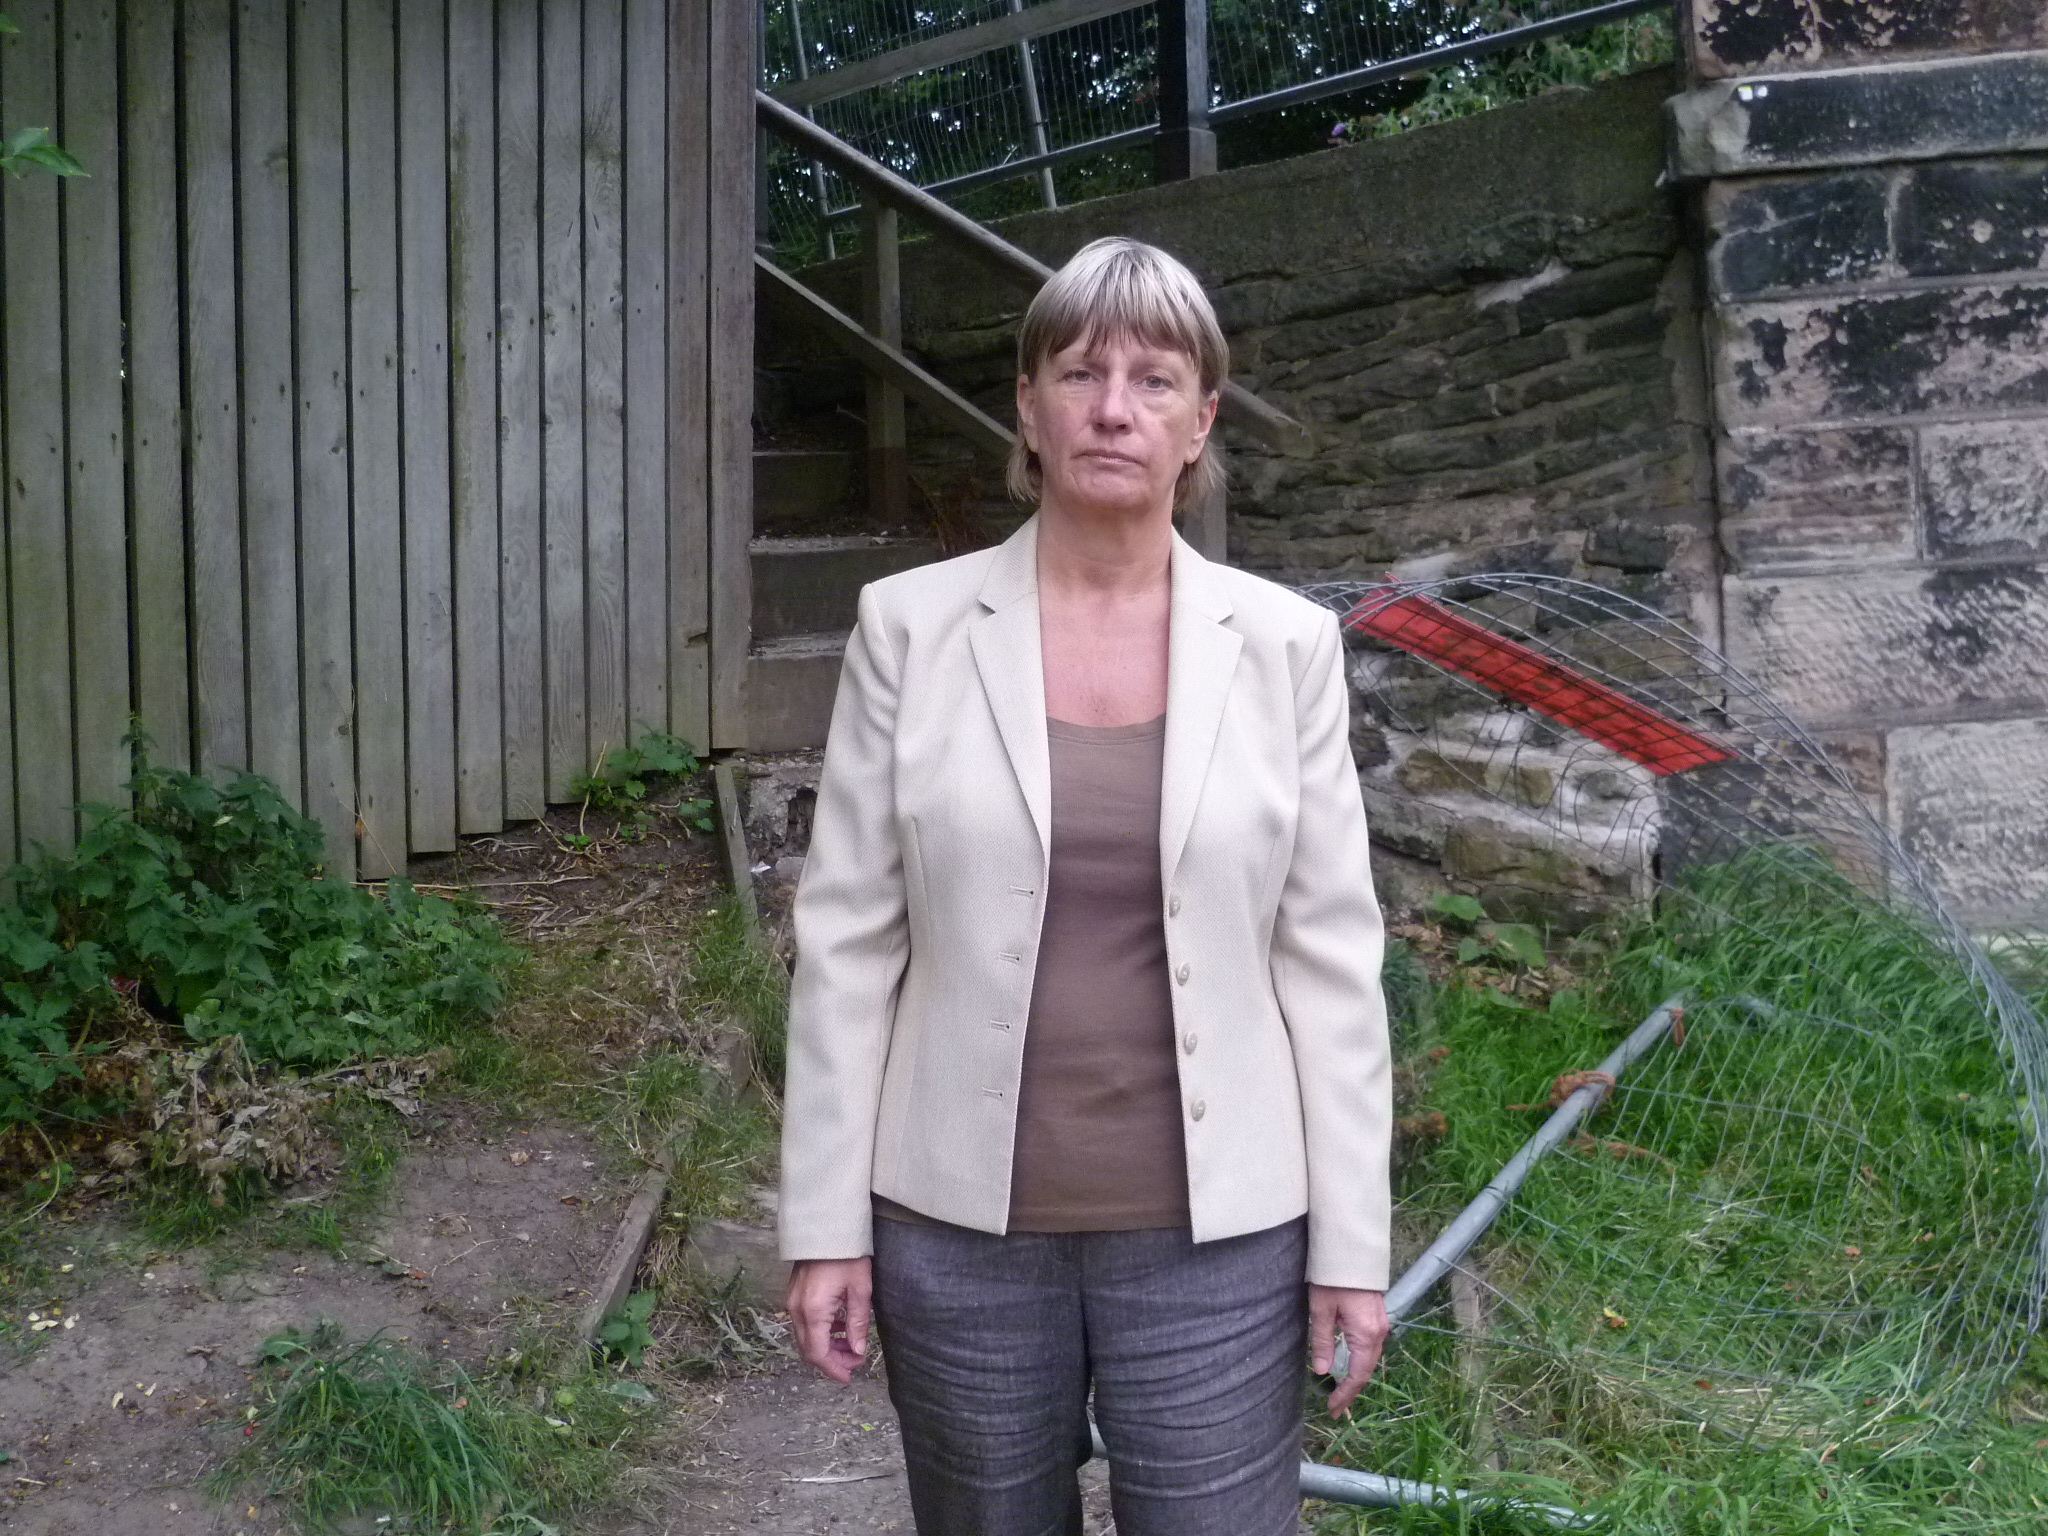 Lydiate Labour Action Team's June Burns is raising concerns about the steps from the canal to Pilling Lane in Lydiate.